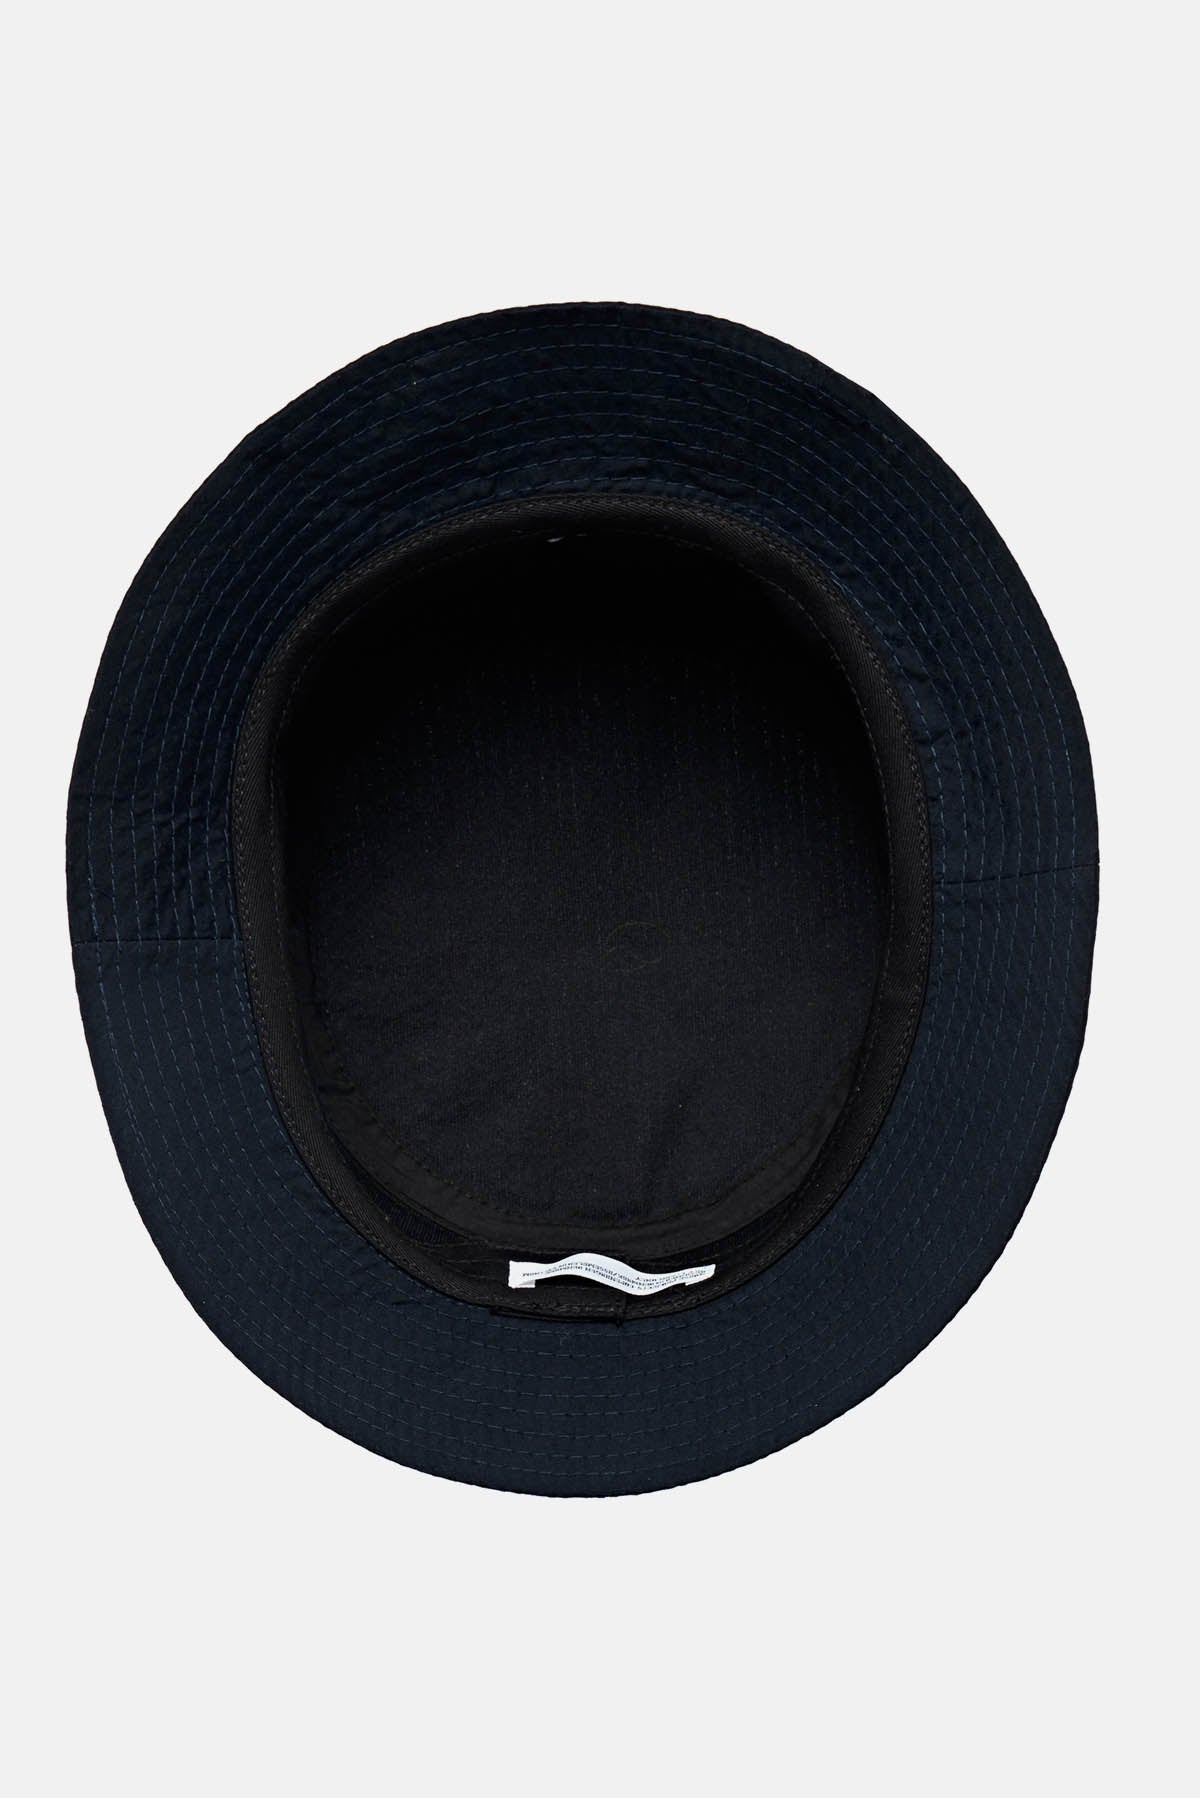 575bd00743 Norse Projects Seersucker Bucket Hat available from Priory